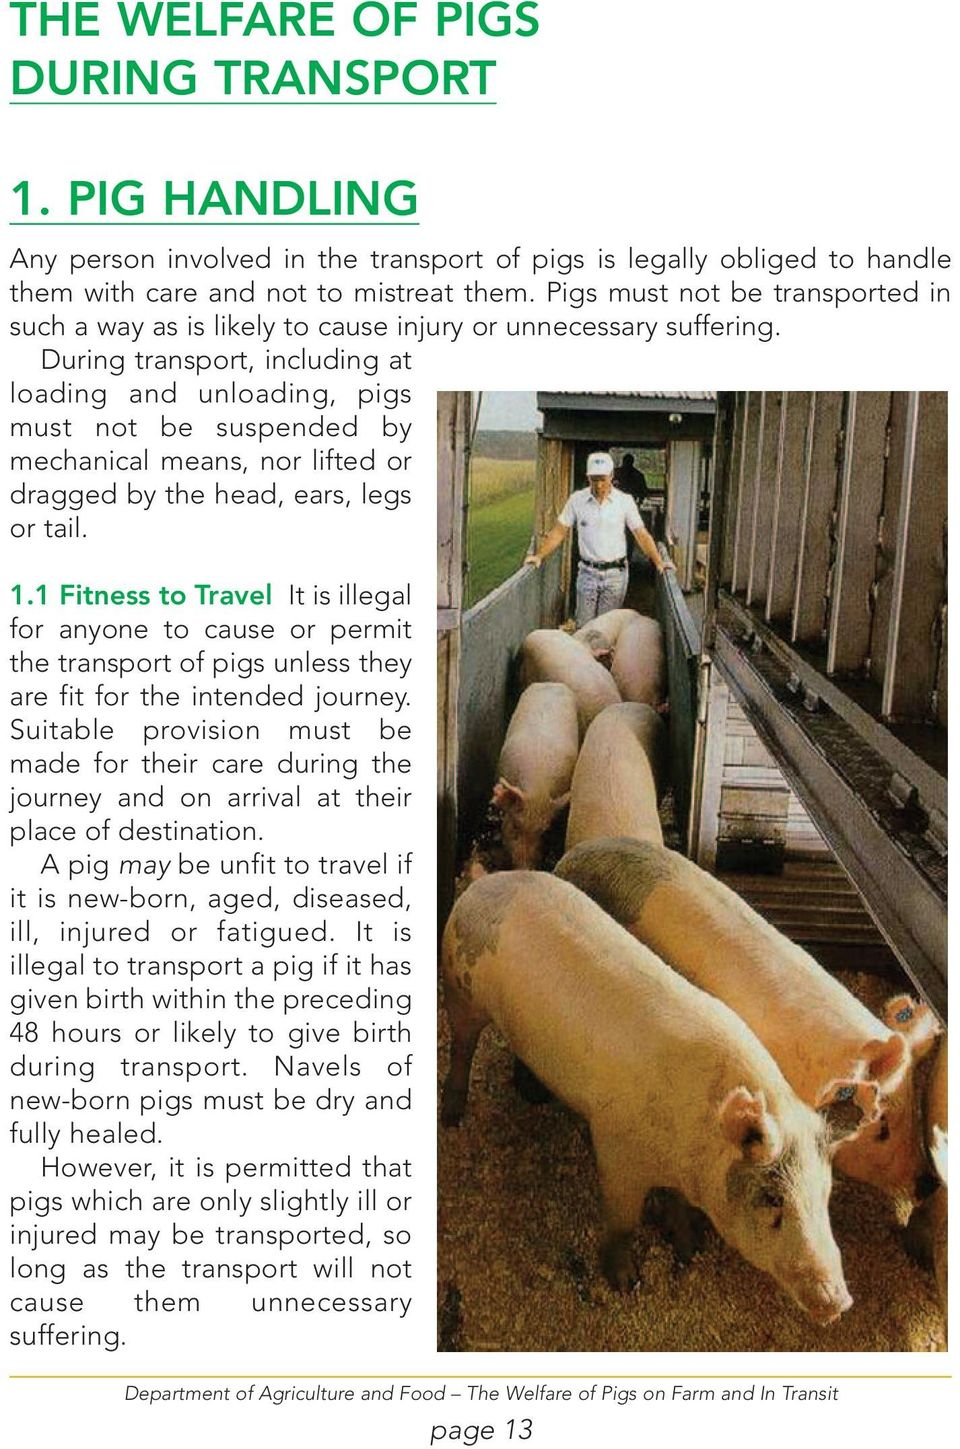 During transport, including at loading and unloading, pigs must not be suspended by mechanical means, nor lifted or dragged by the head, ears, legs or tail. 1.